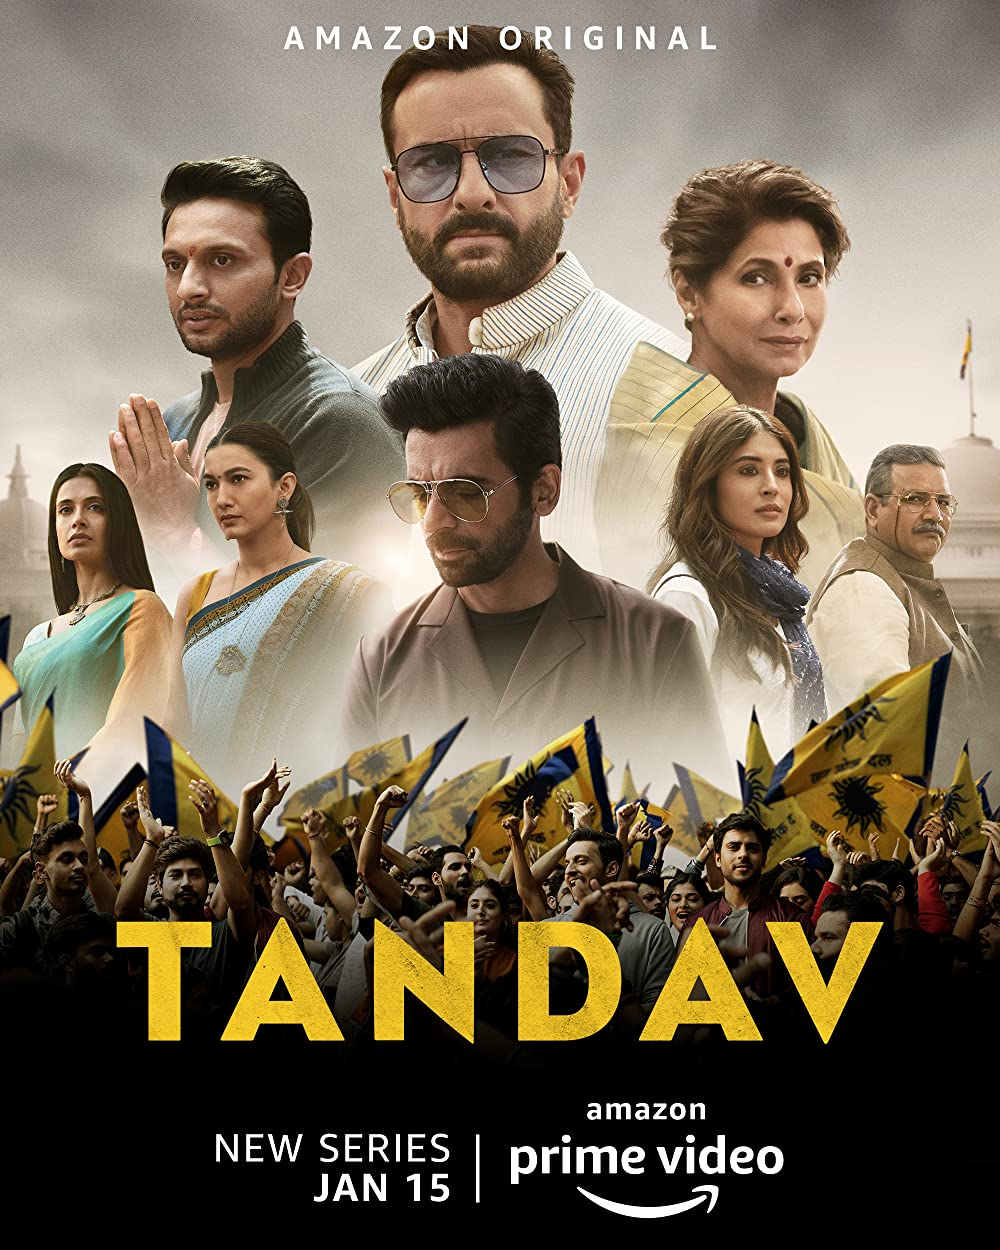 Tandav S01 2021 Hindi Amazon Original Complete Web Series 720p HDRip 2.1GB Download